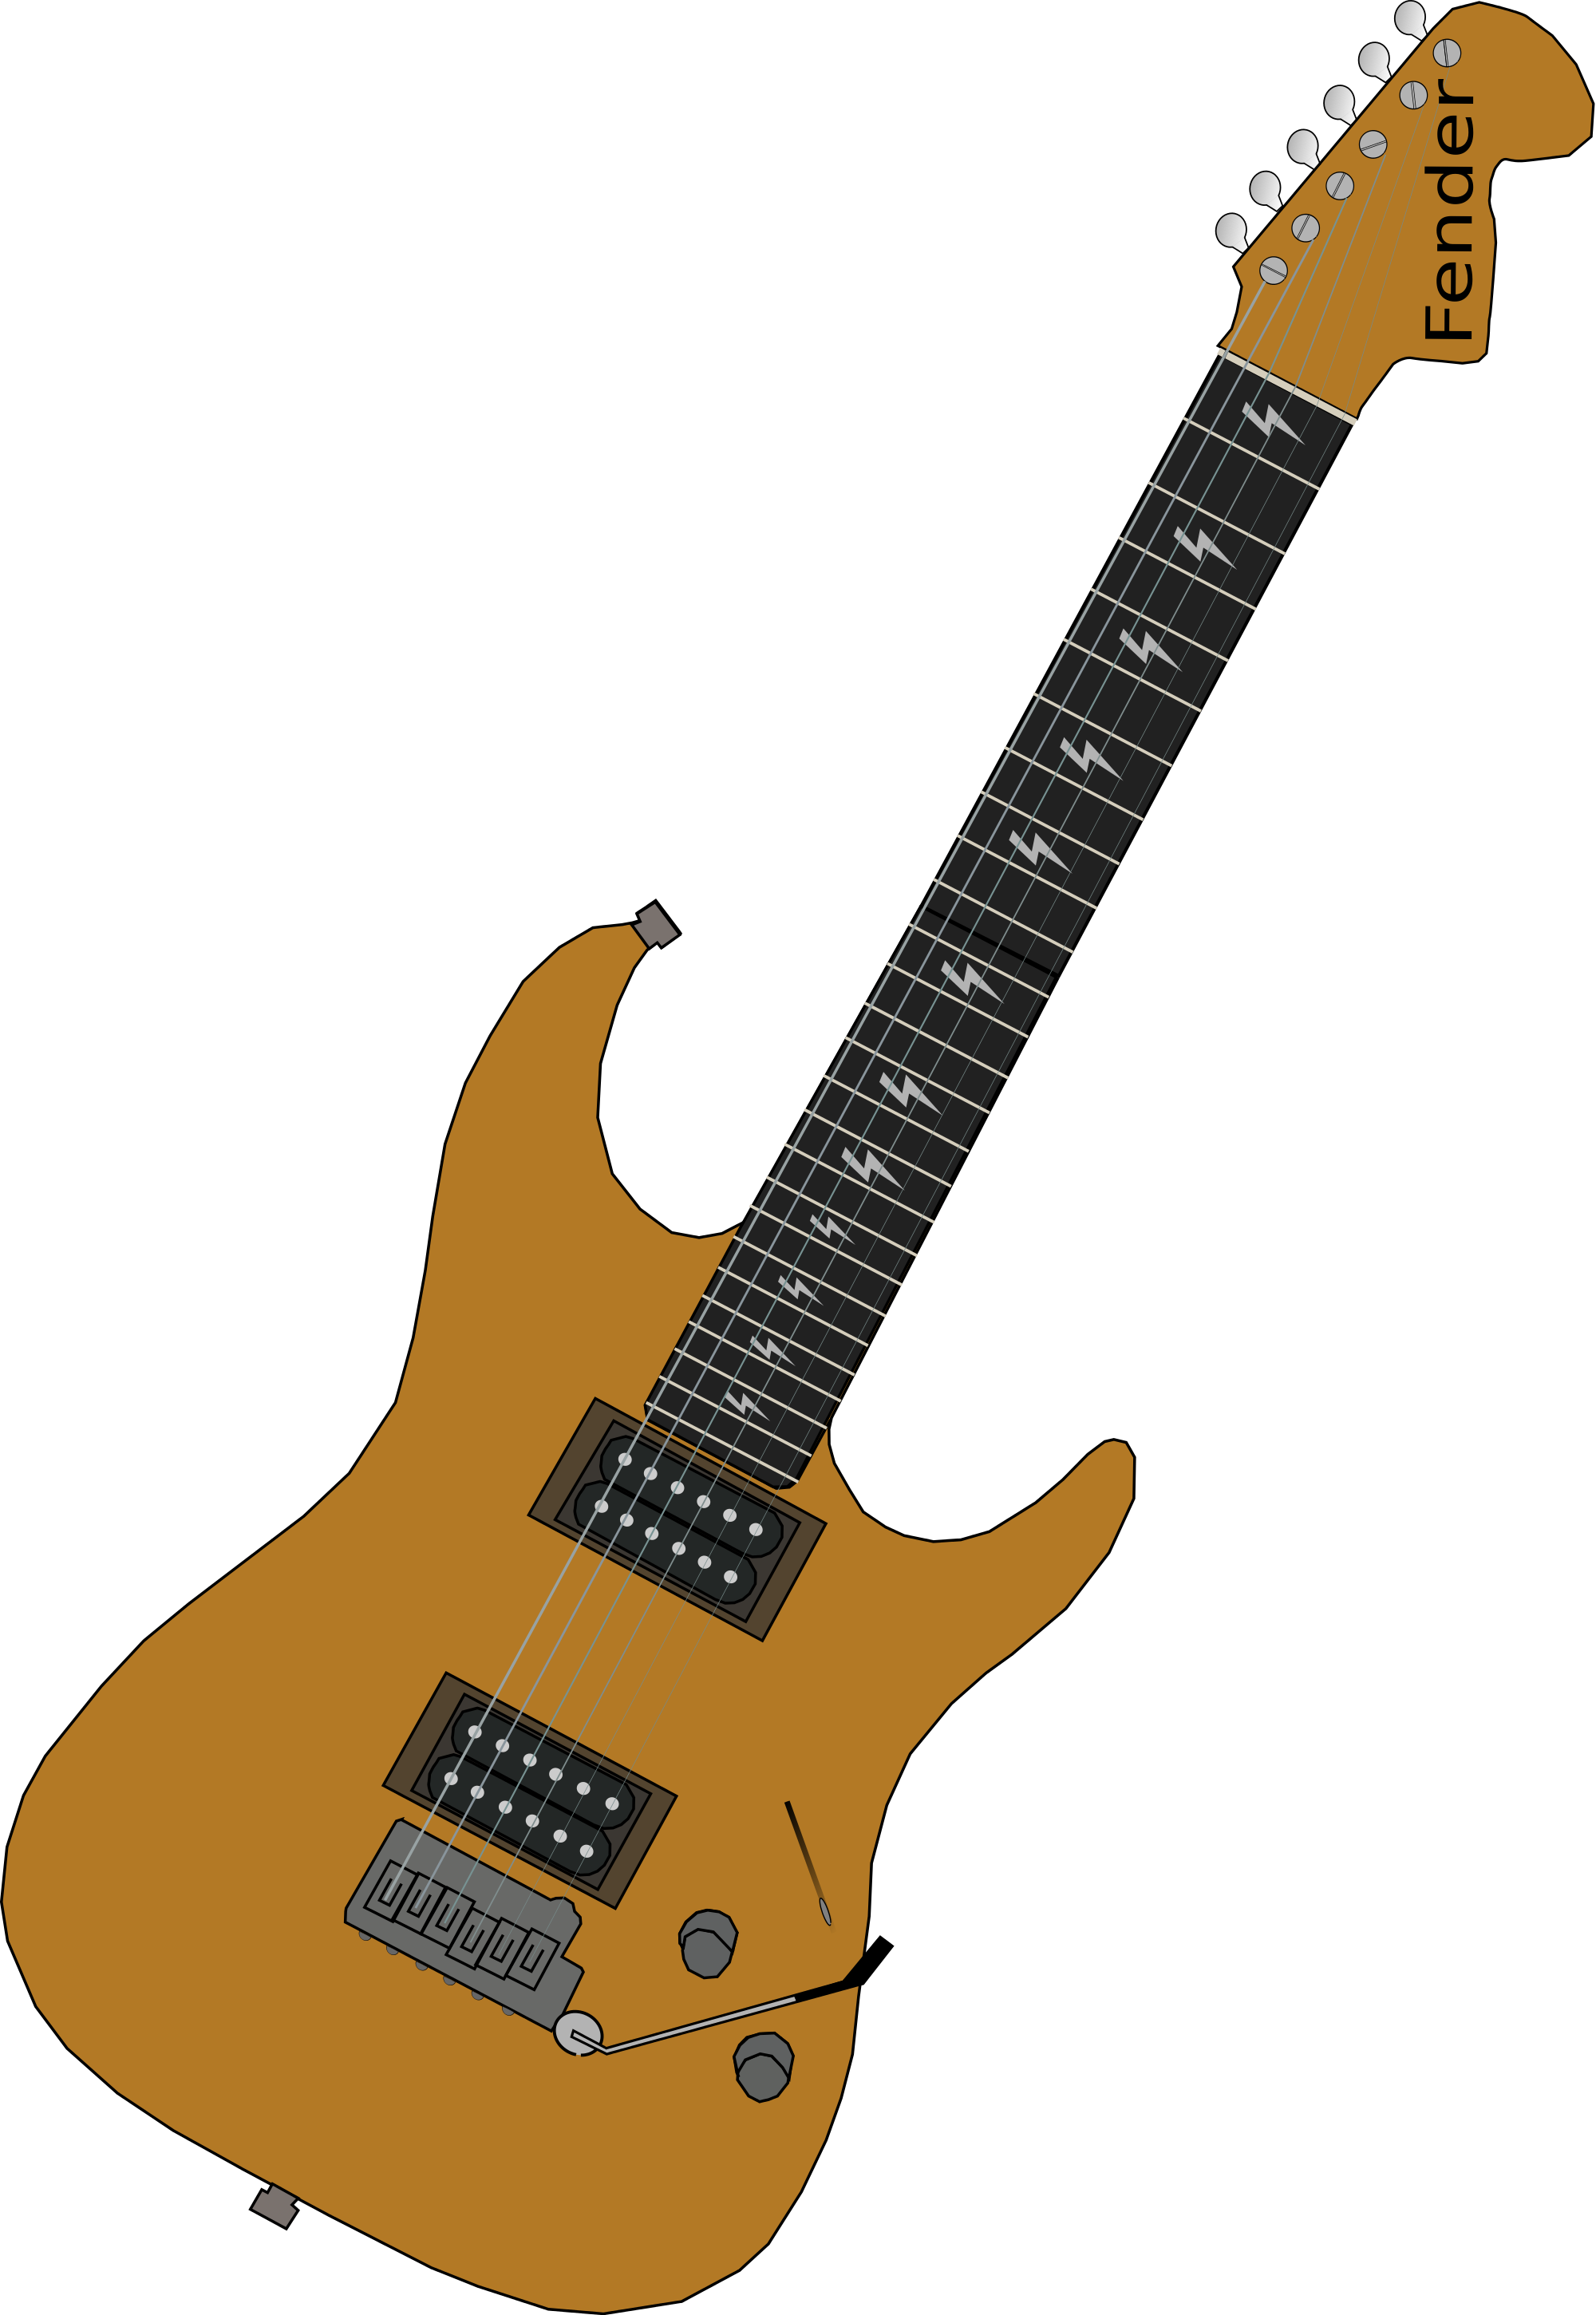 Clipart guitar svg. File wikimedia commons open